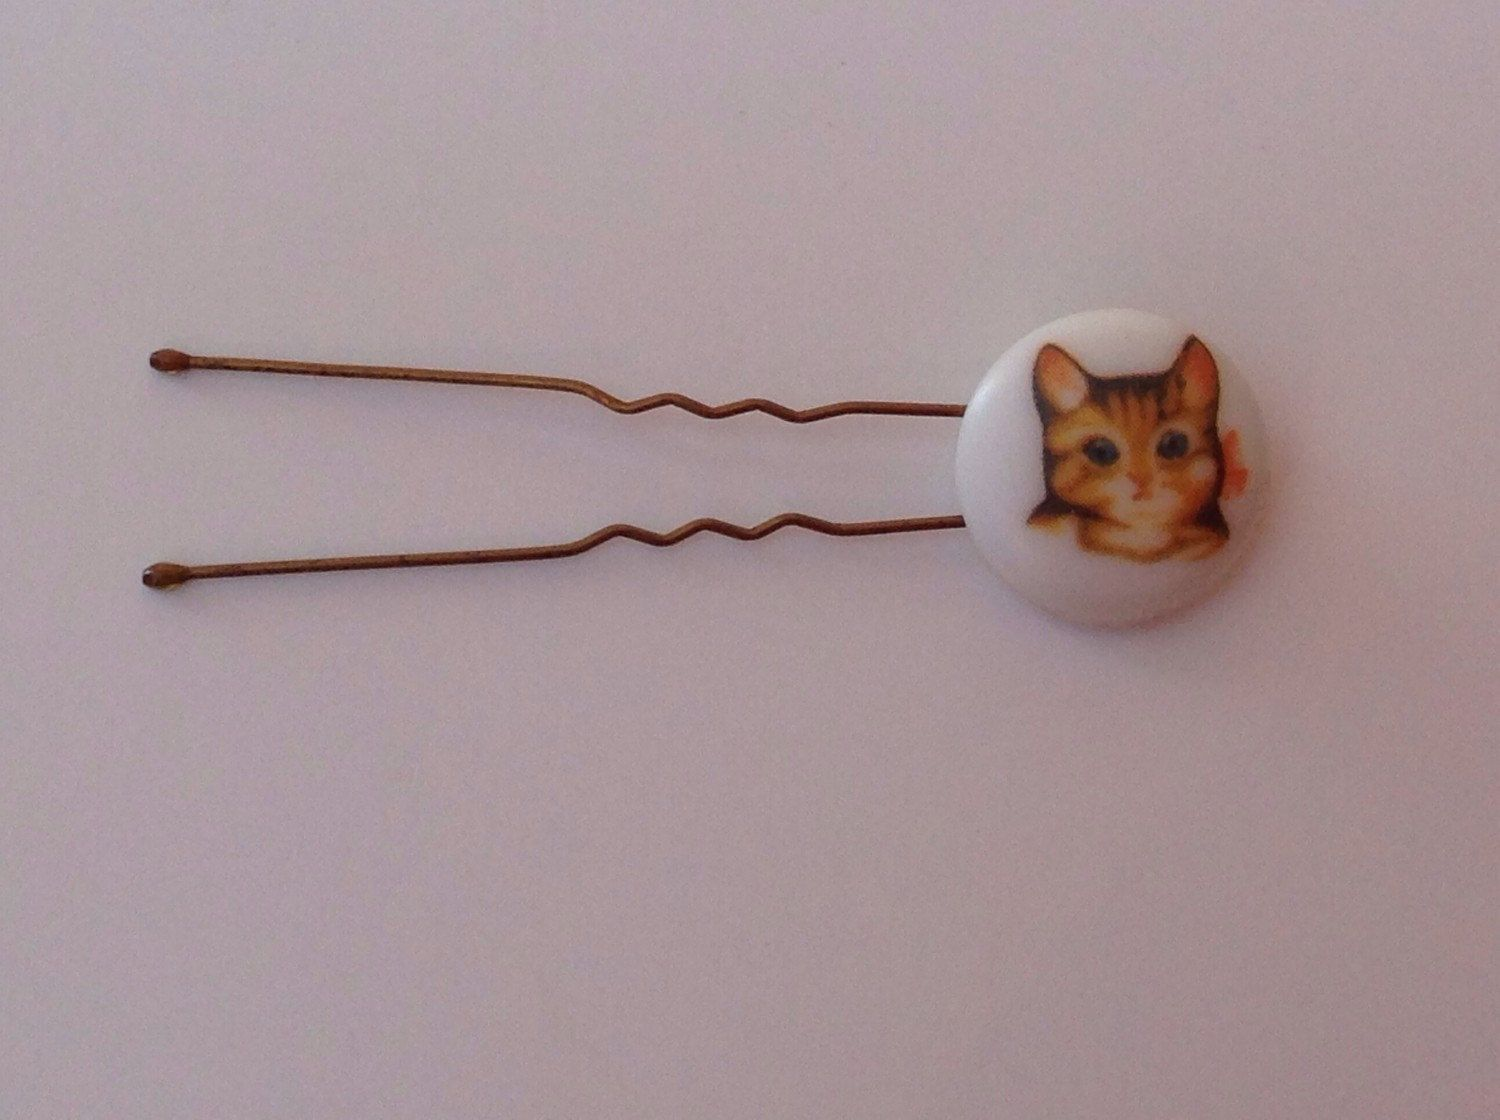 Charming Vintage Cat Blue Bonnet Duck Mouse Hair Pin Bobby Pin Bun Pin Youthful Historical Cat Duck Mouse Vintage Button Hair Accessories by CrazyVintageBoutique on Etsy